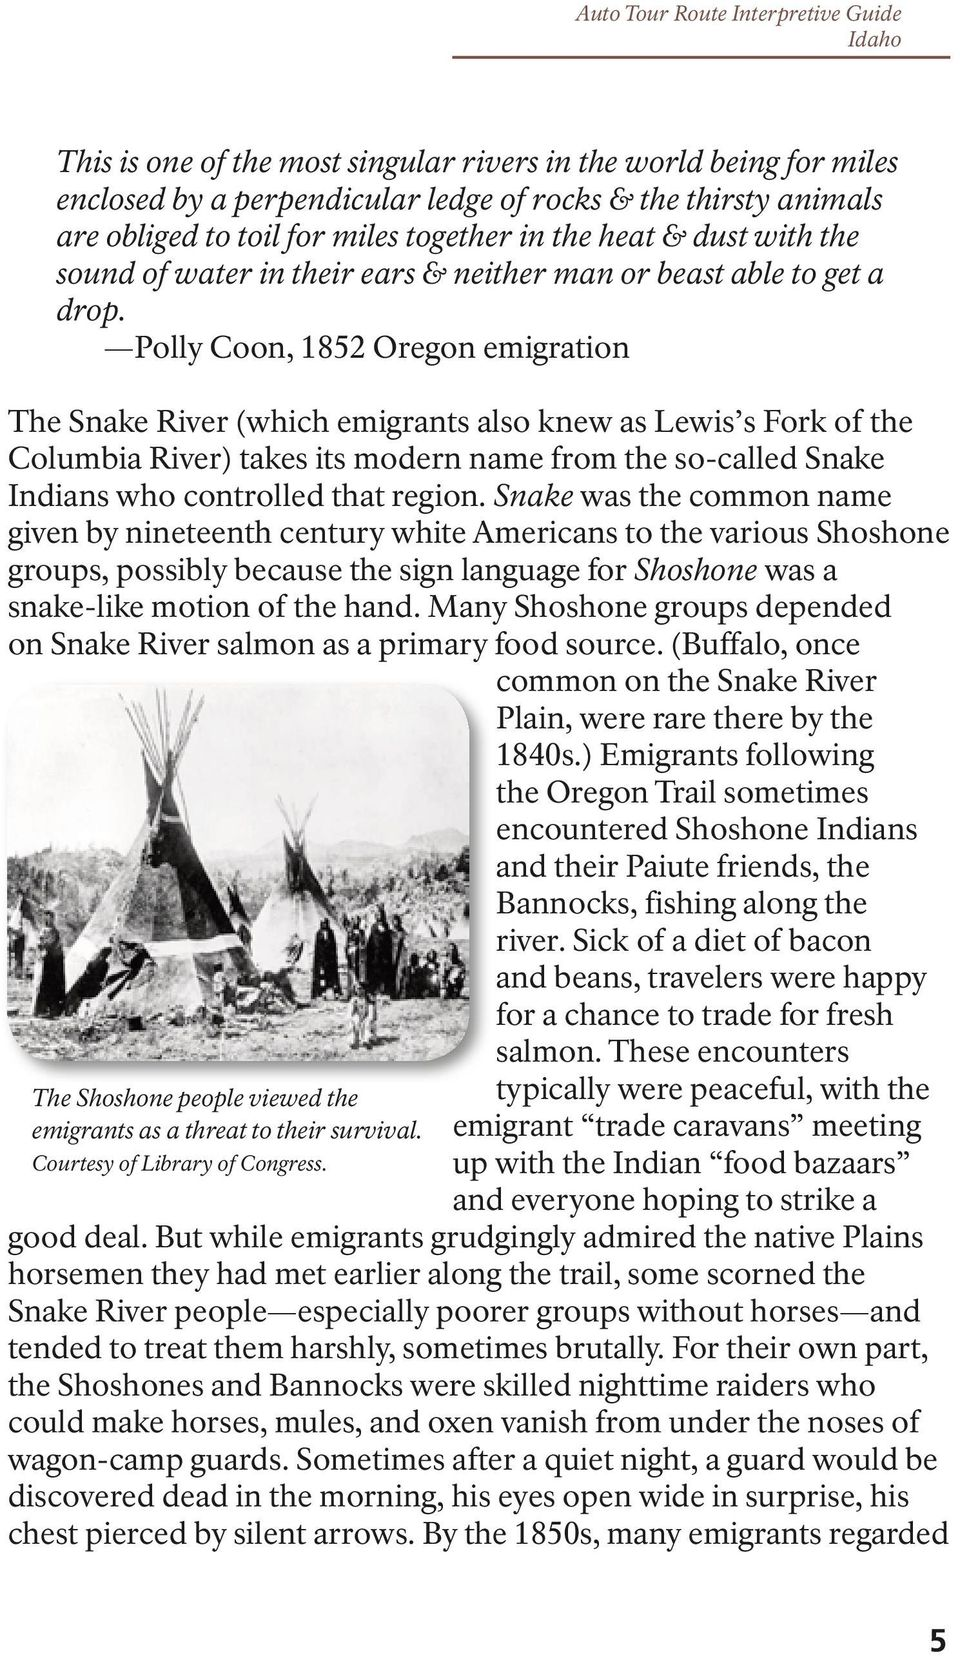 Polly Coon, 1852 Oregon emigration The Snake River (which emigrants also knew as Lewis s Fork of the Columbia River) takes its modern name from the so-called Snake Indians who controlled that region.